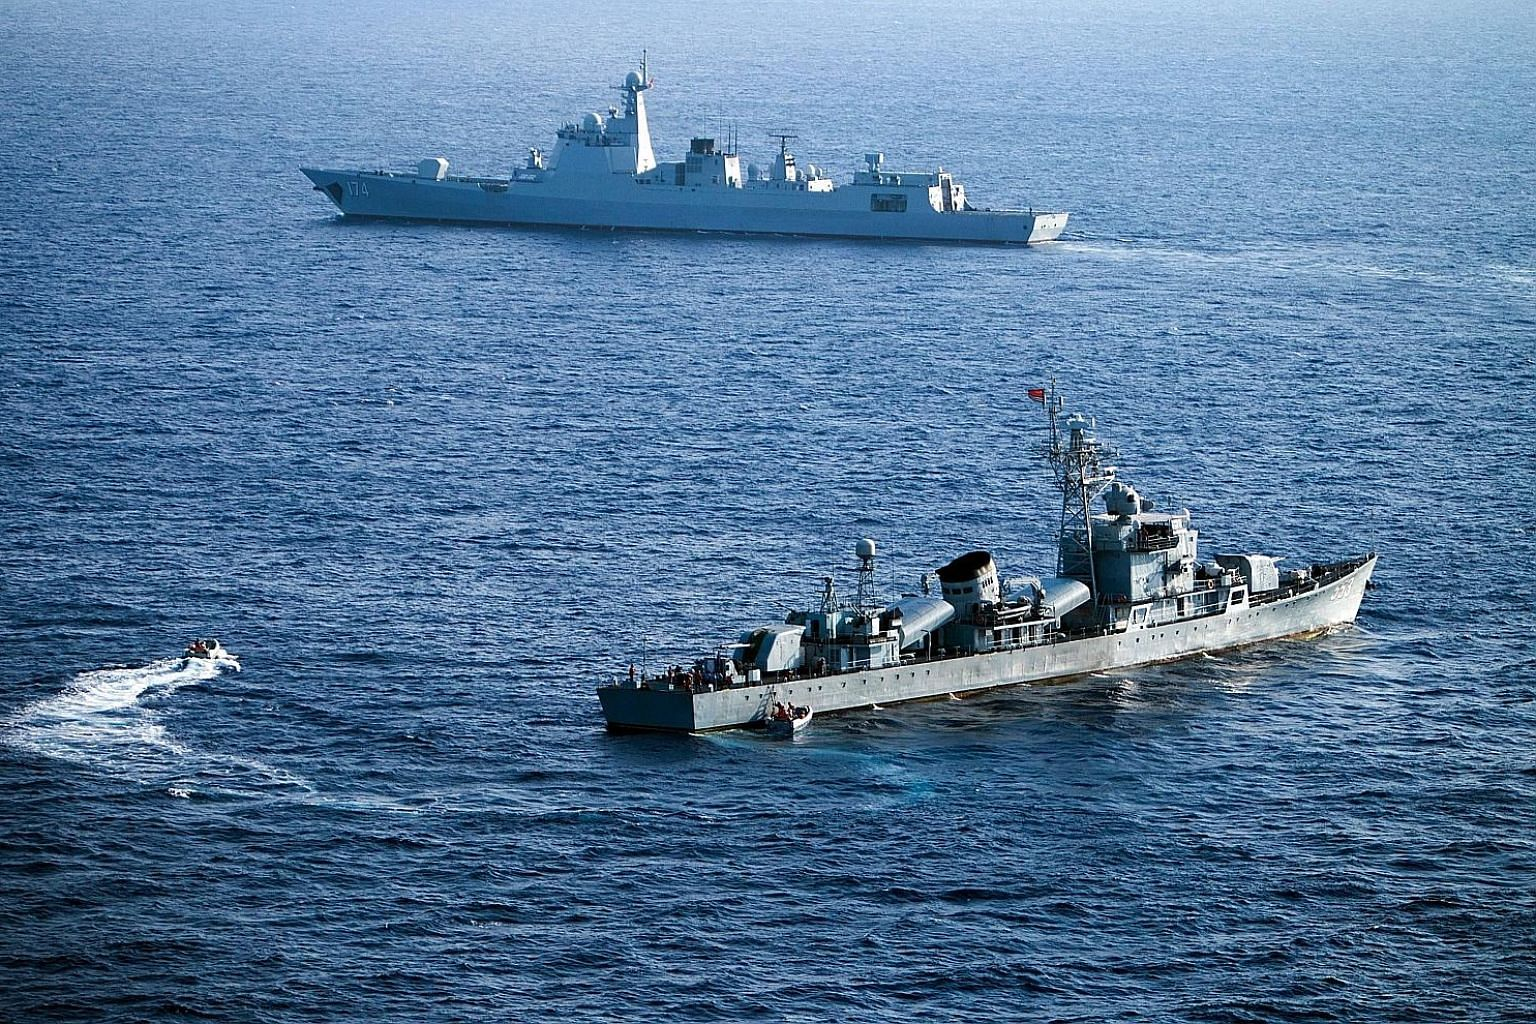 Ships from China's South Sea Fleet taking part in a drill near the Paracel Islands in the South China Sea in May. Both China and the US have been conducting exercises in the South China Sea, but South-east Asian states have not taken part, as most do